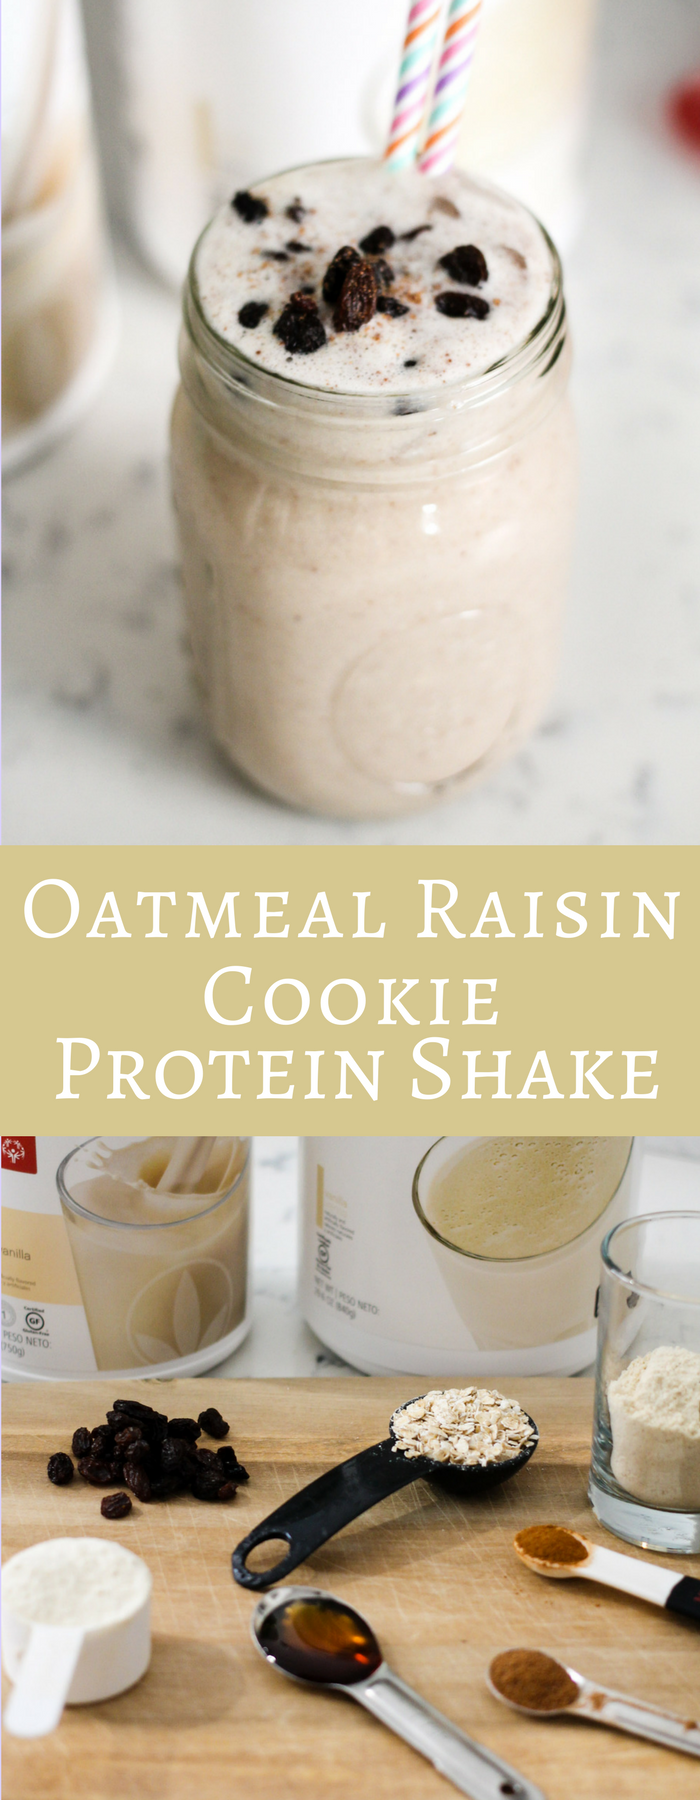 With 17 grams of protein this Oatmeal Raisin Cookie Protein Shake is the perfect post workout shake! Not to mention it tastes like a decadent treat!